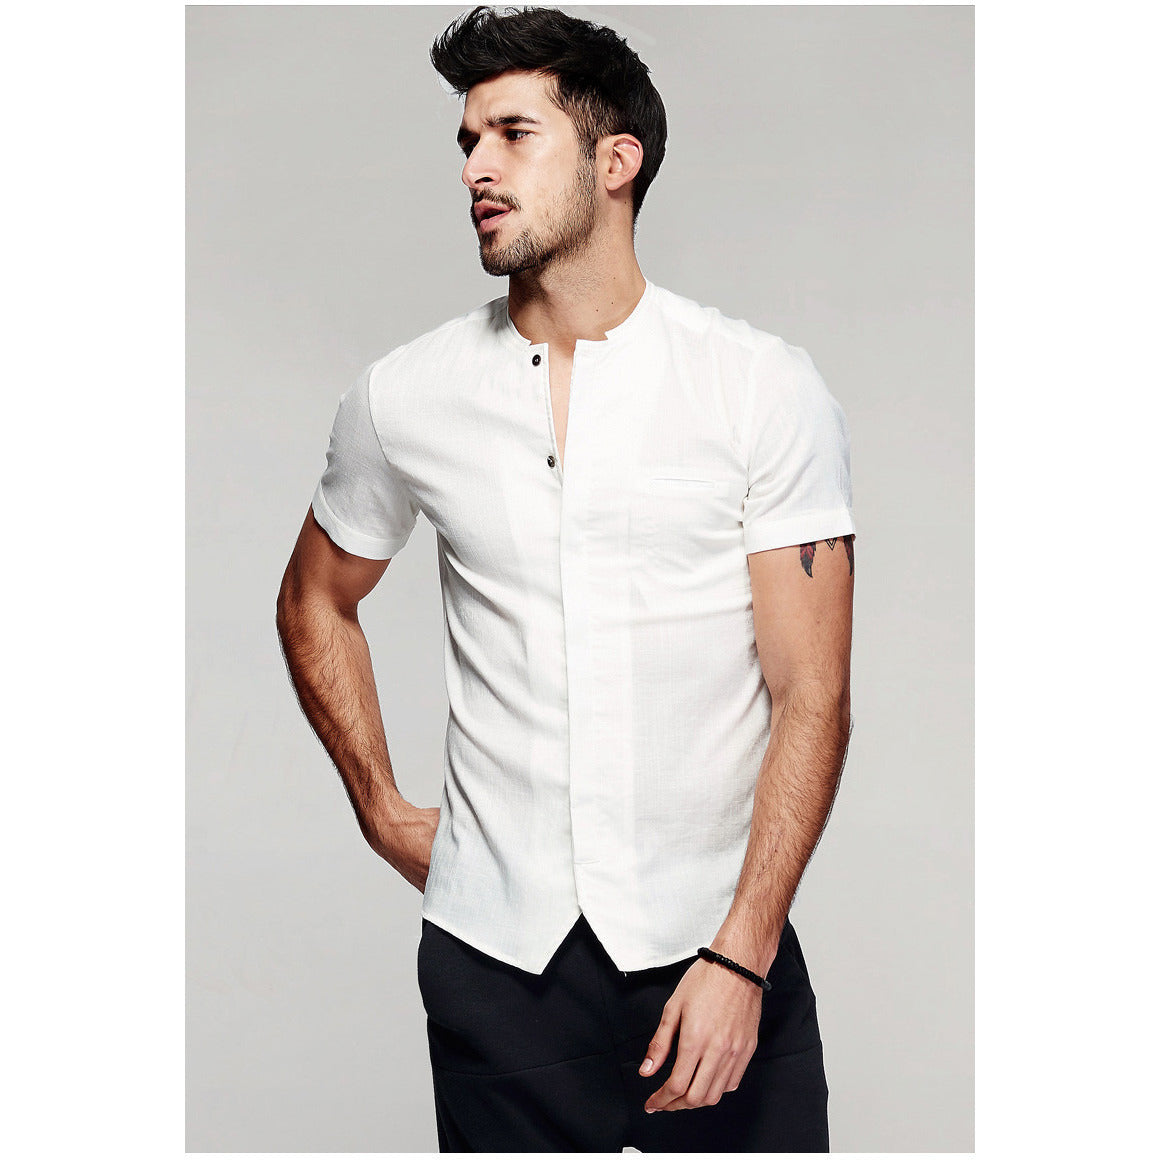 Gab Short Sleeve White Shirt - Haberfasher